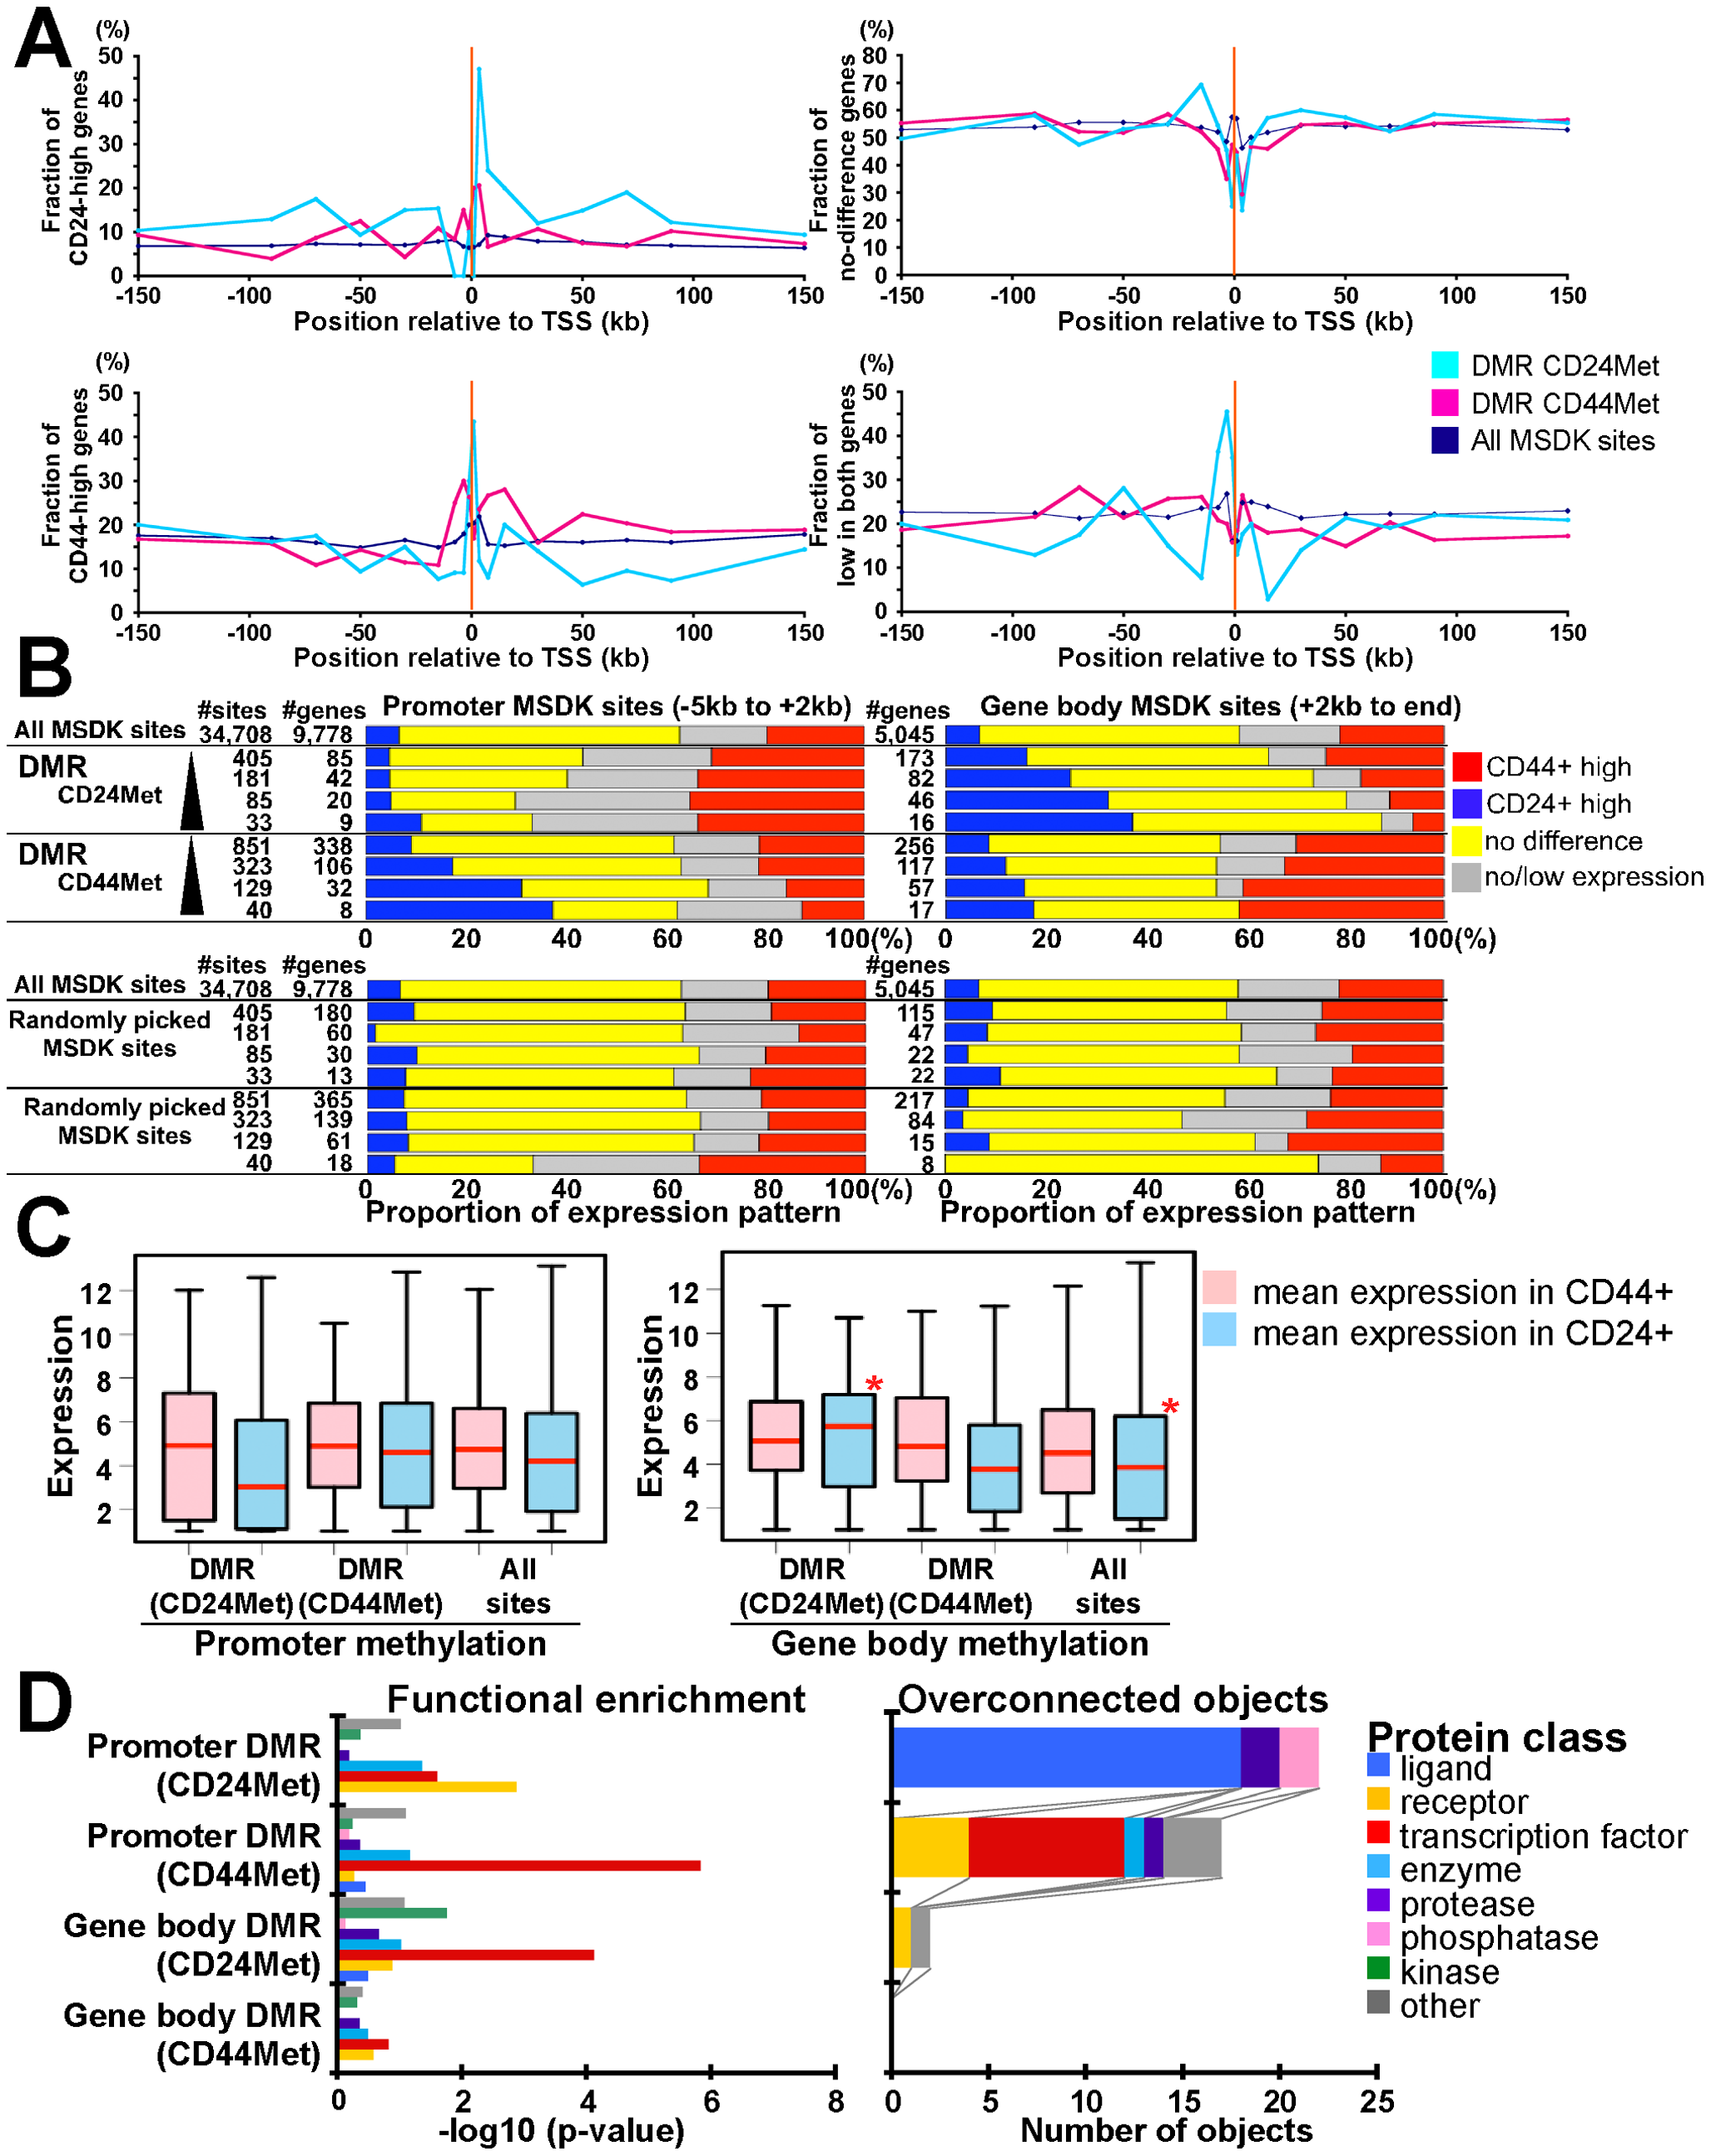 Combined view of DNA methylation and gene expression patterns.